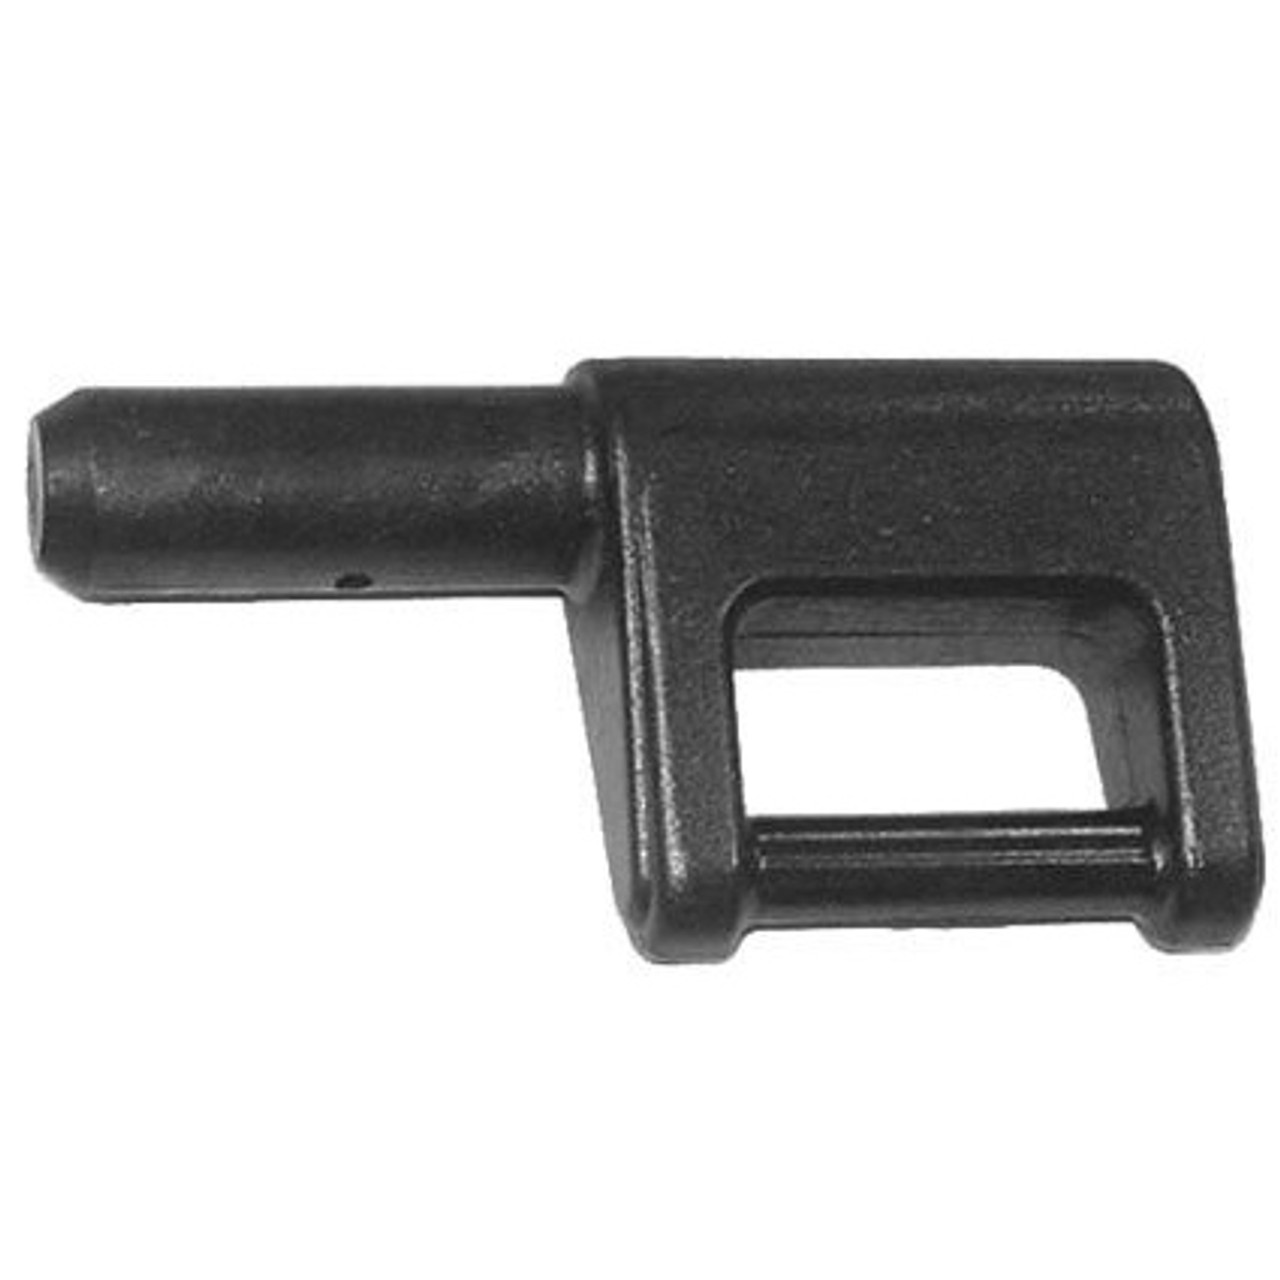 PENN Downrigger BOOM END CABLE GUIDE REPLACEMENT ASSMBL